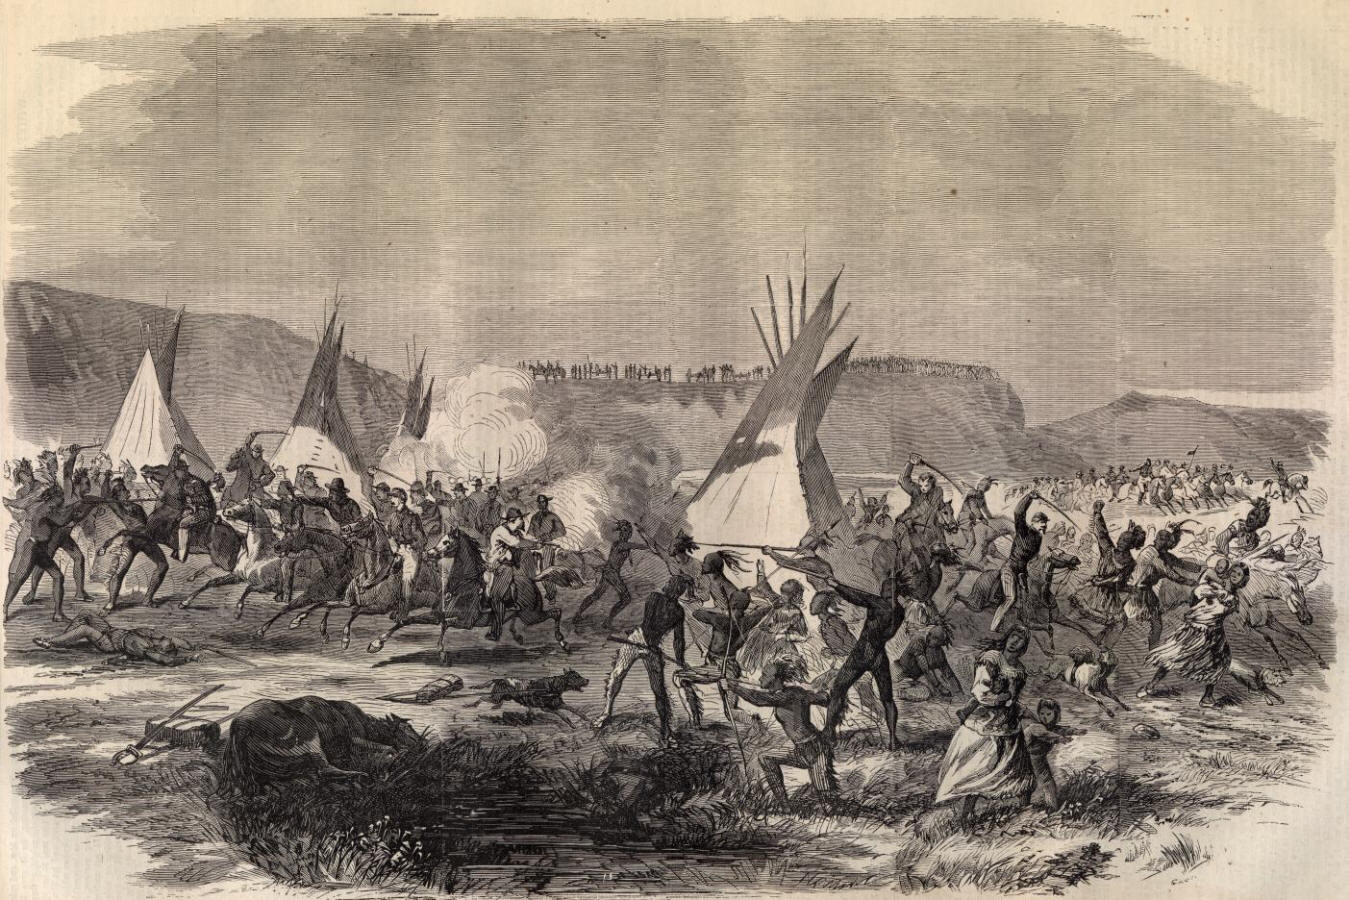 the great sioux war The great sioux war refers to series of conflicts from 1876 to 1877 involving the lakota sioux and northern the history of the great sioux nation sioux wars.